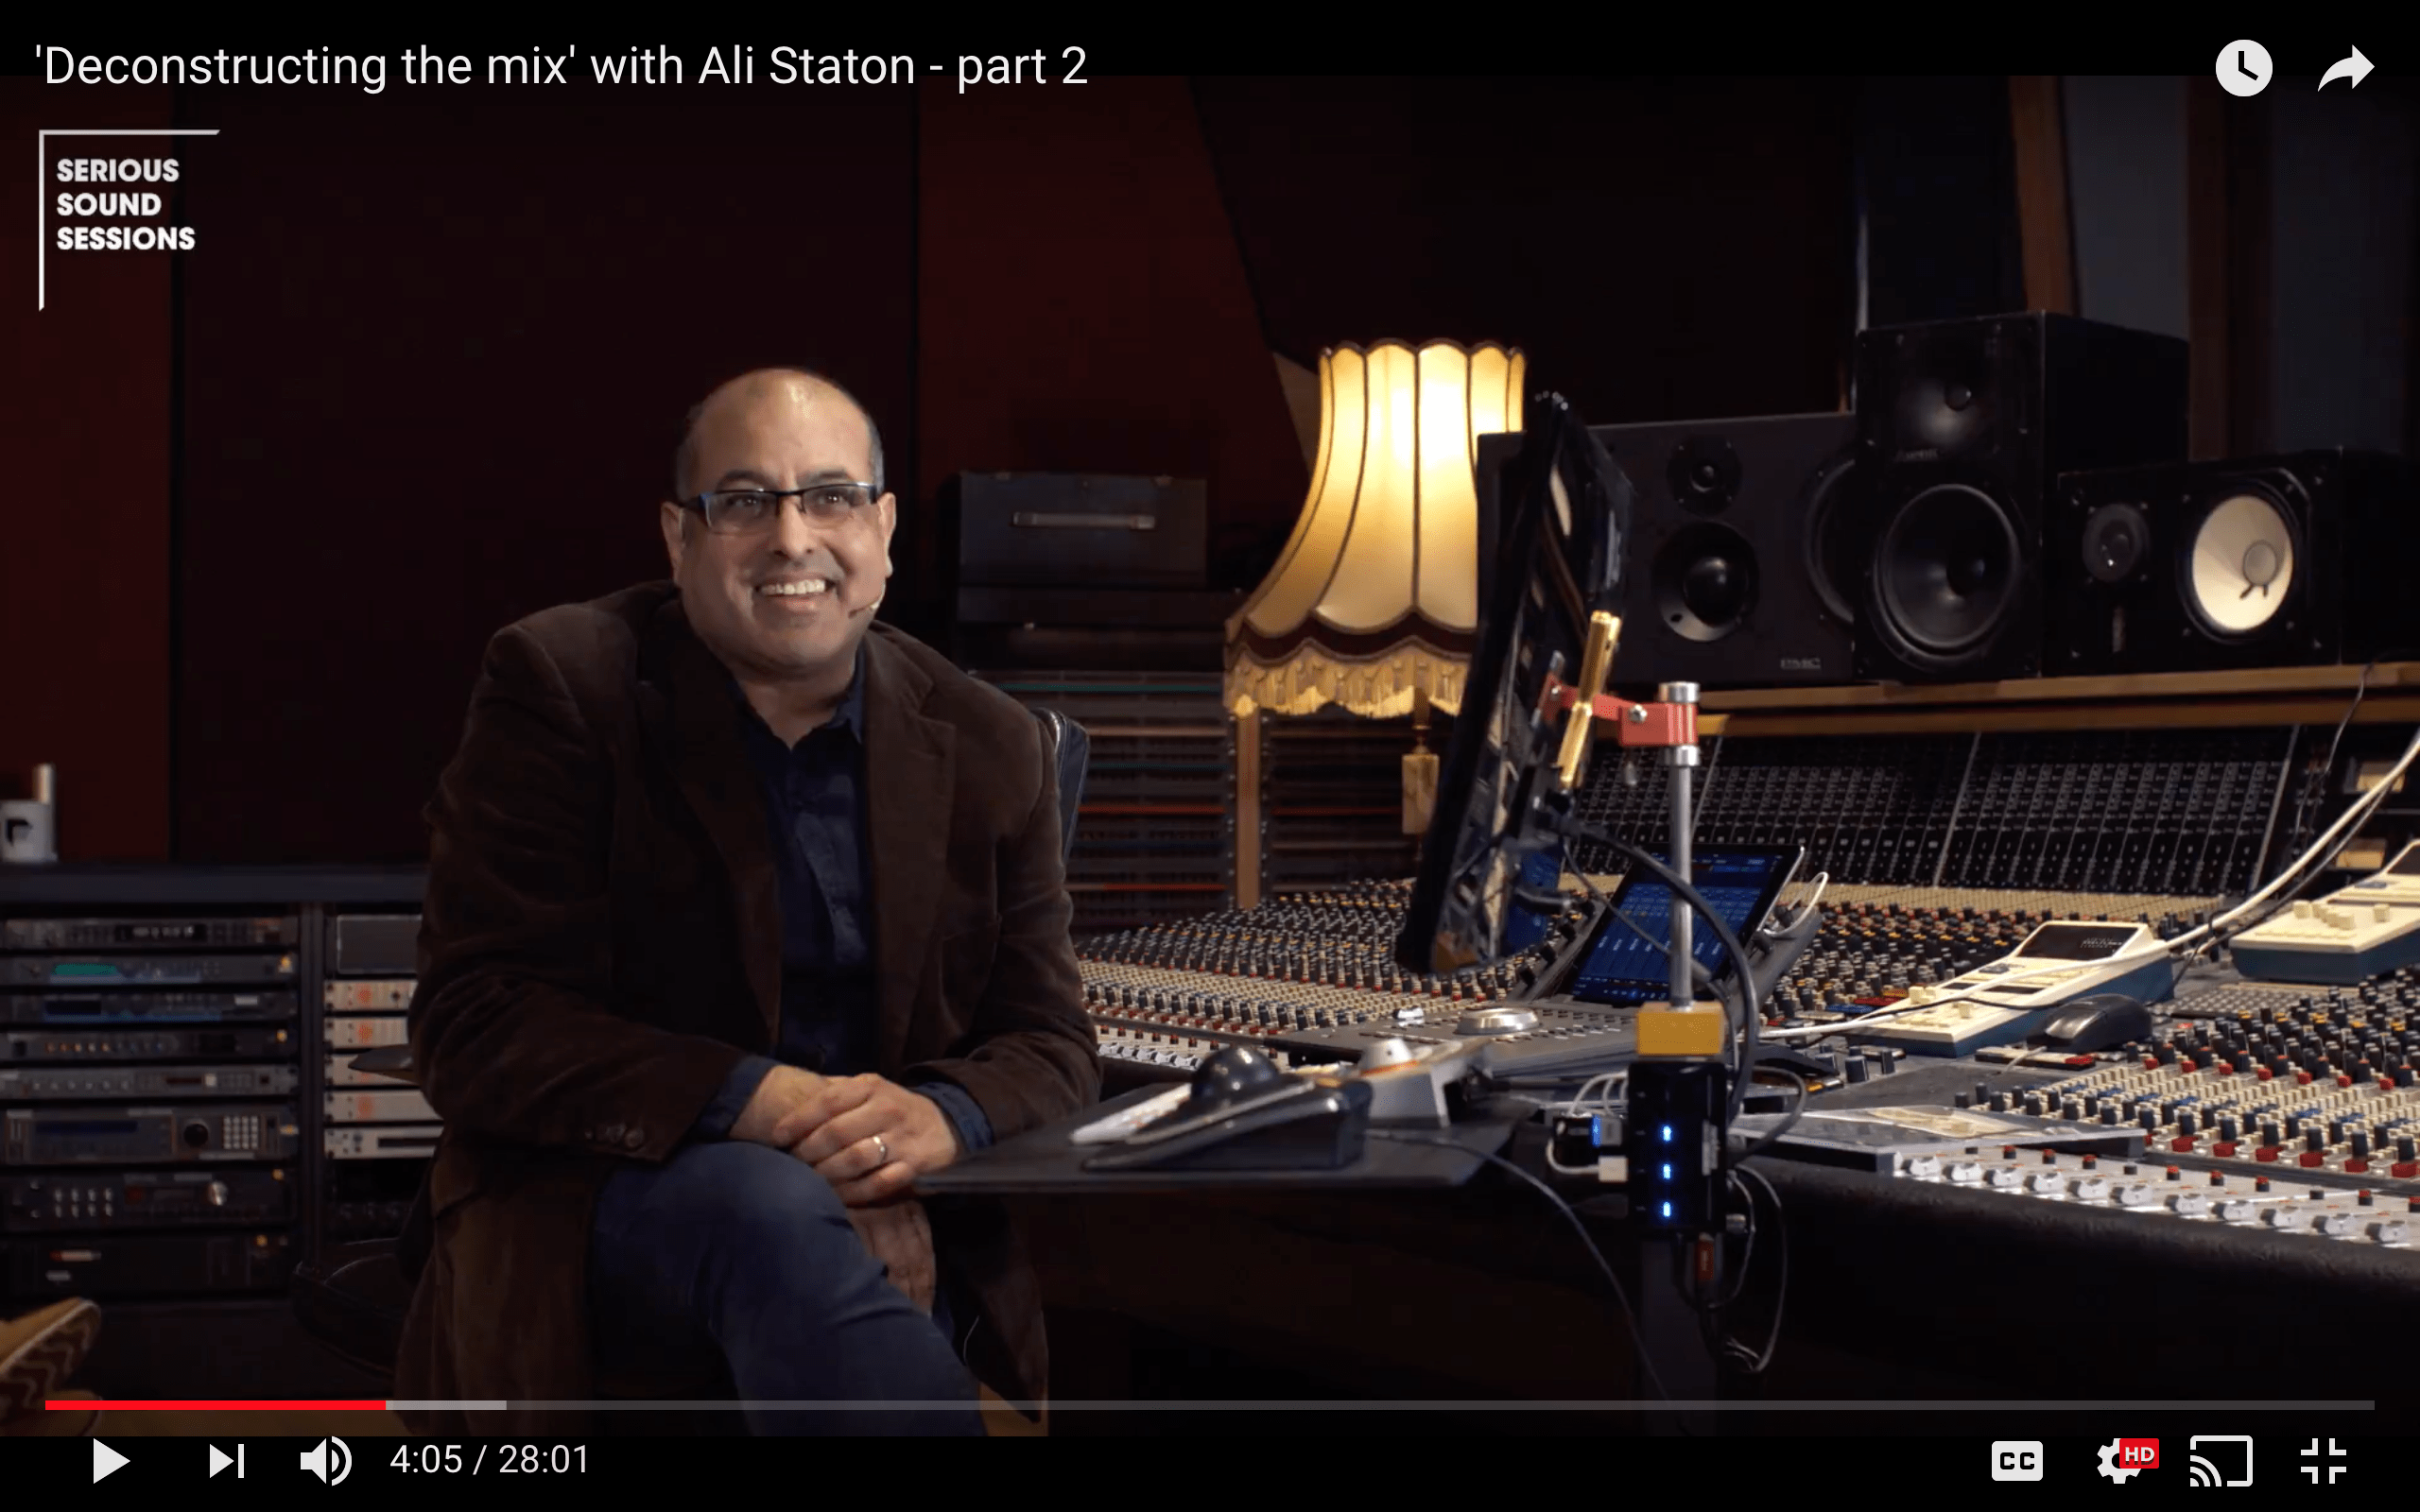 Deconstructing the mix with Ali Staton at Abbey Road Institute Amsterdam